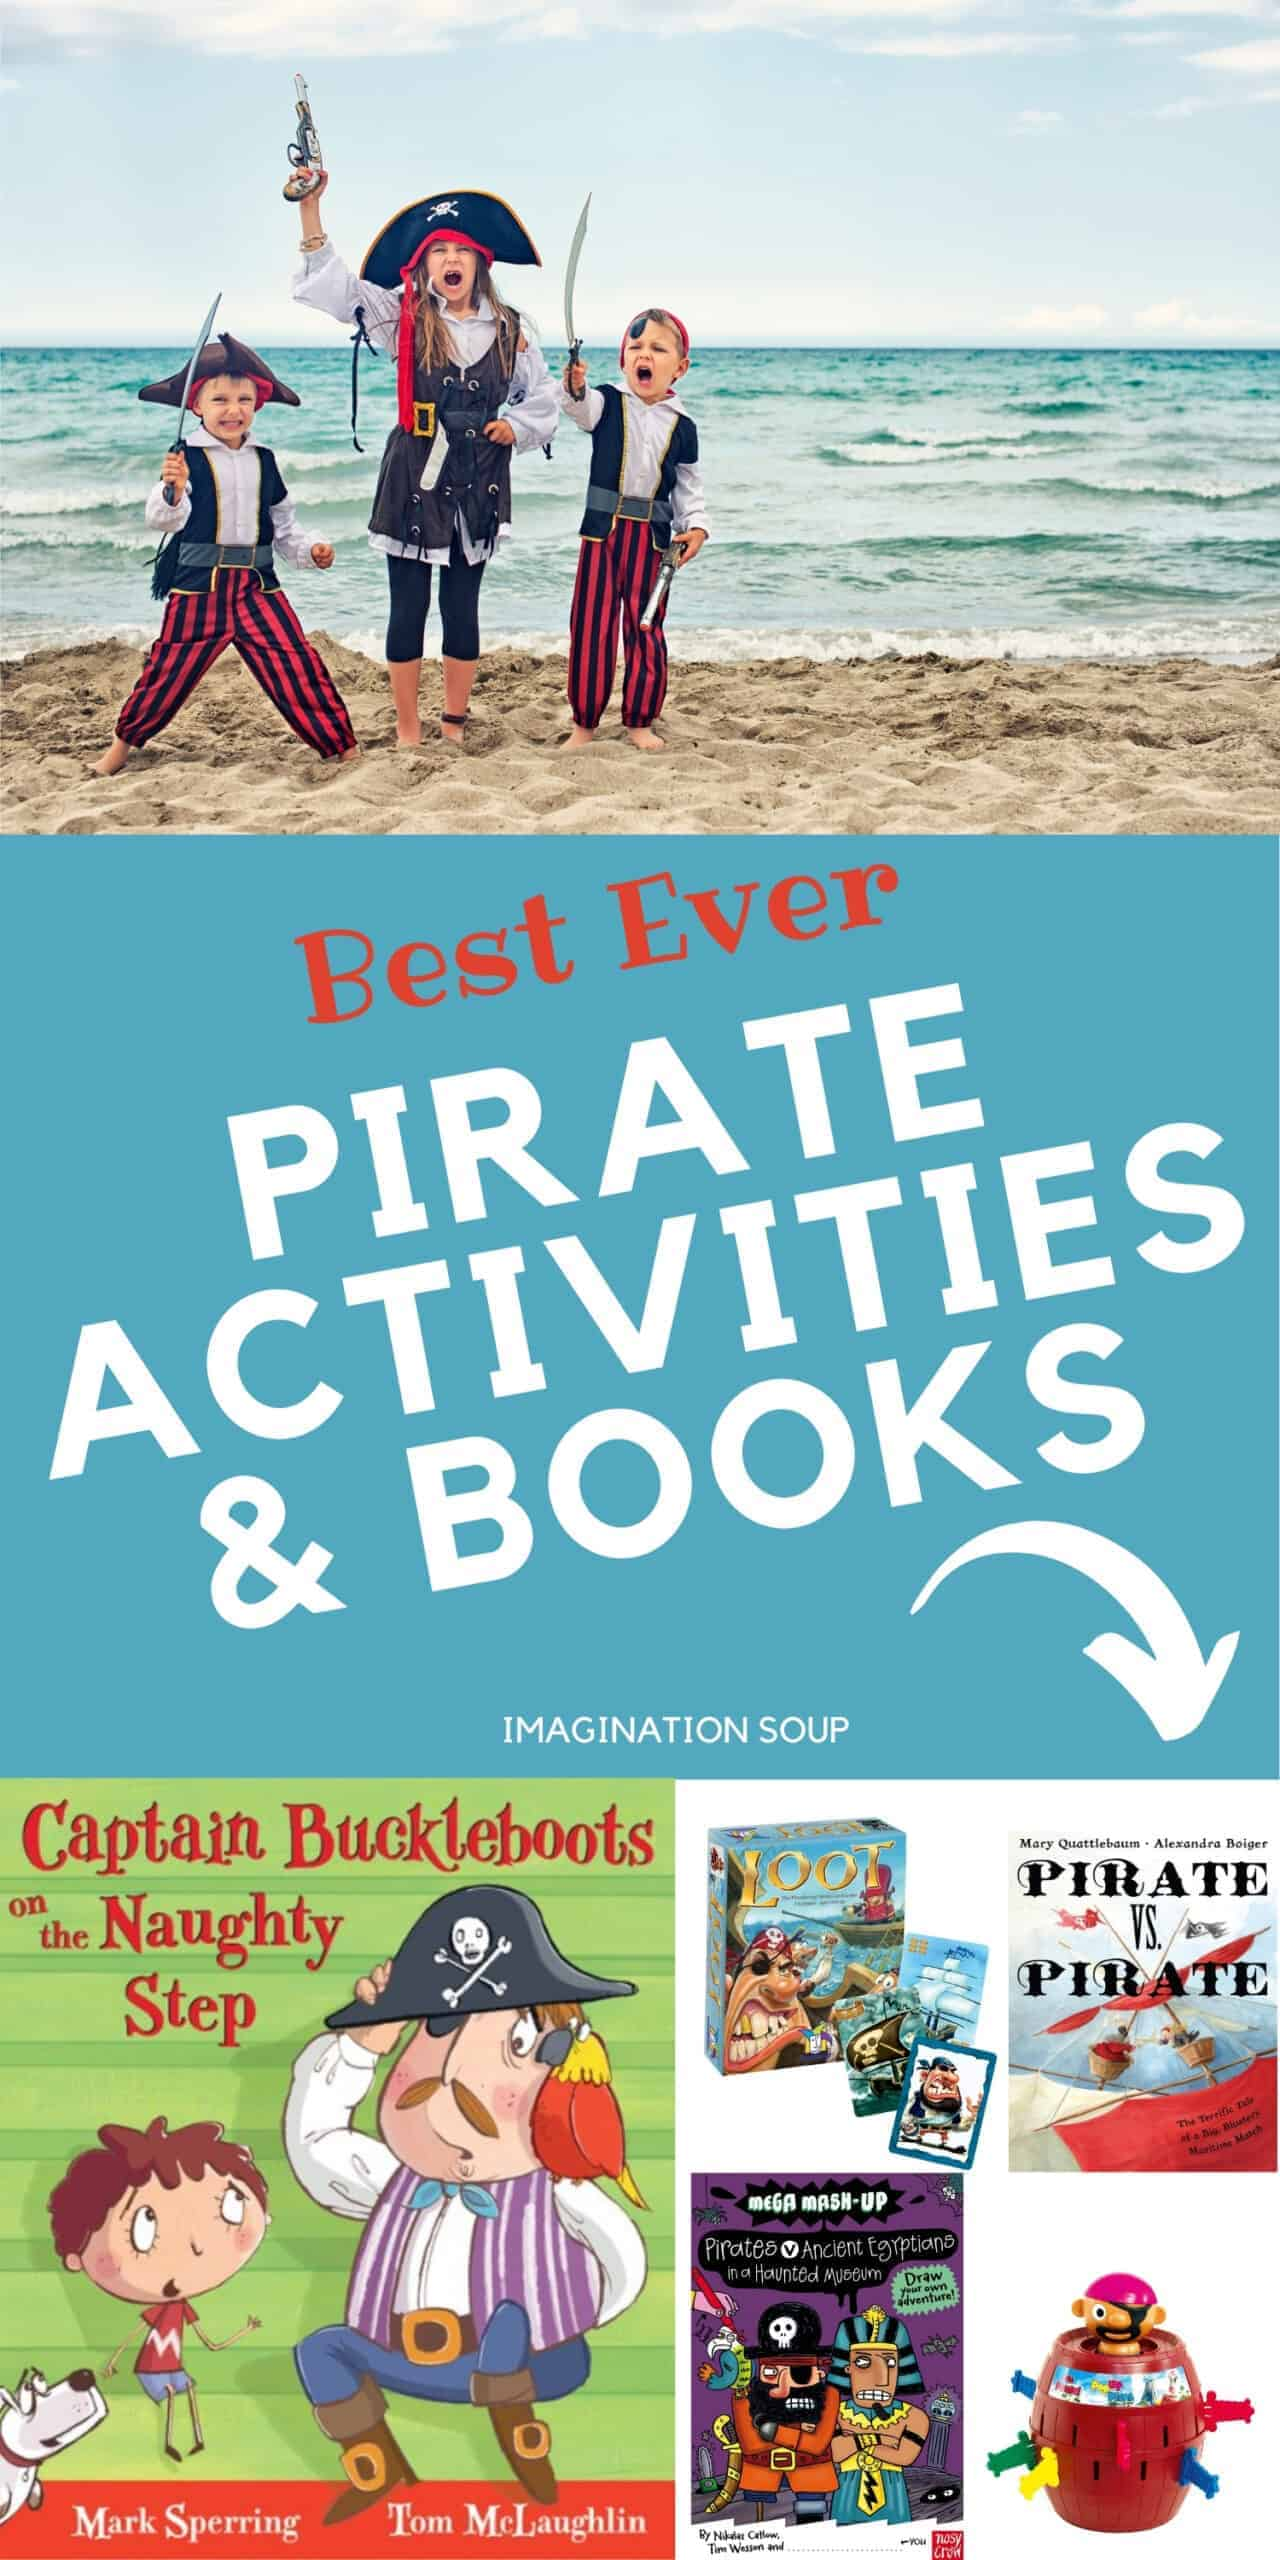 best pirate activities, games, and books for kids